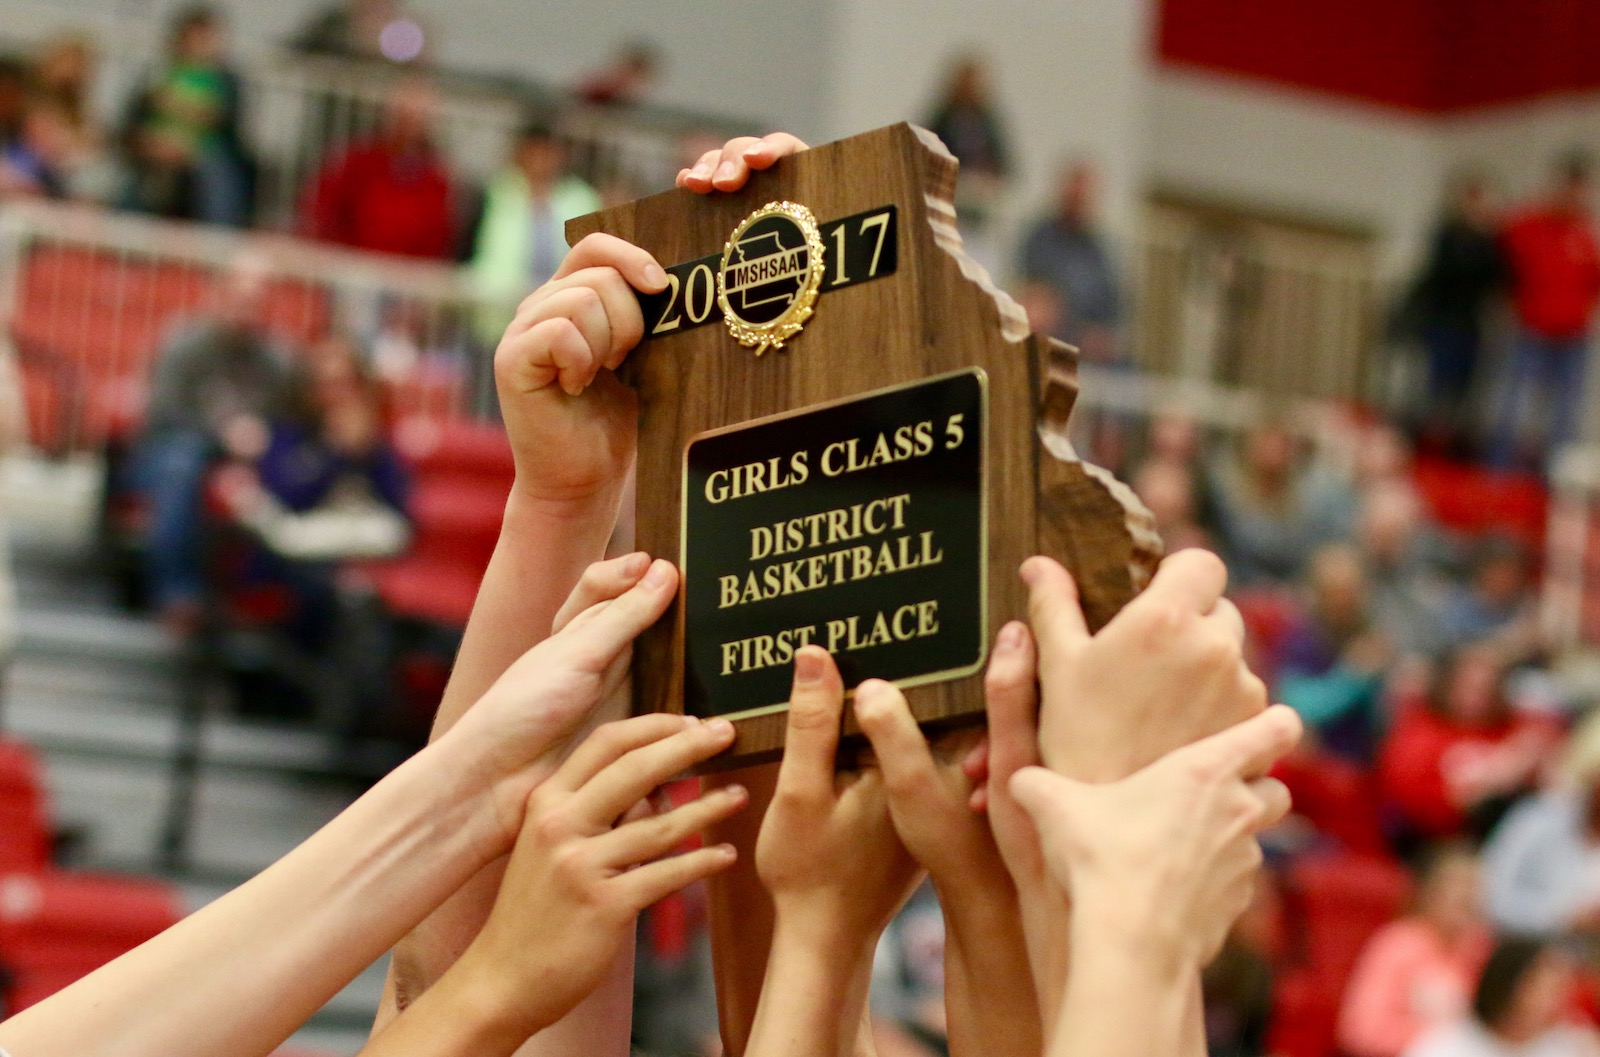 Four-Peat: The Lady Tigers Sew Up Another District Title